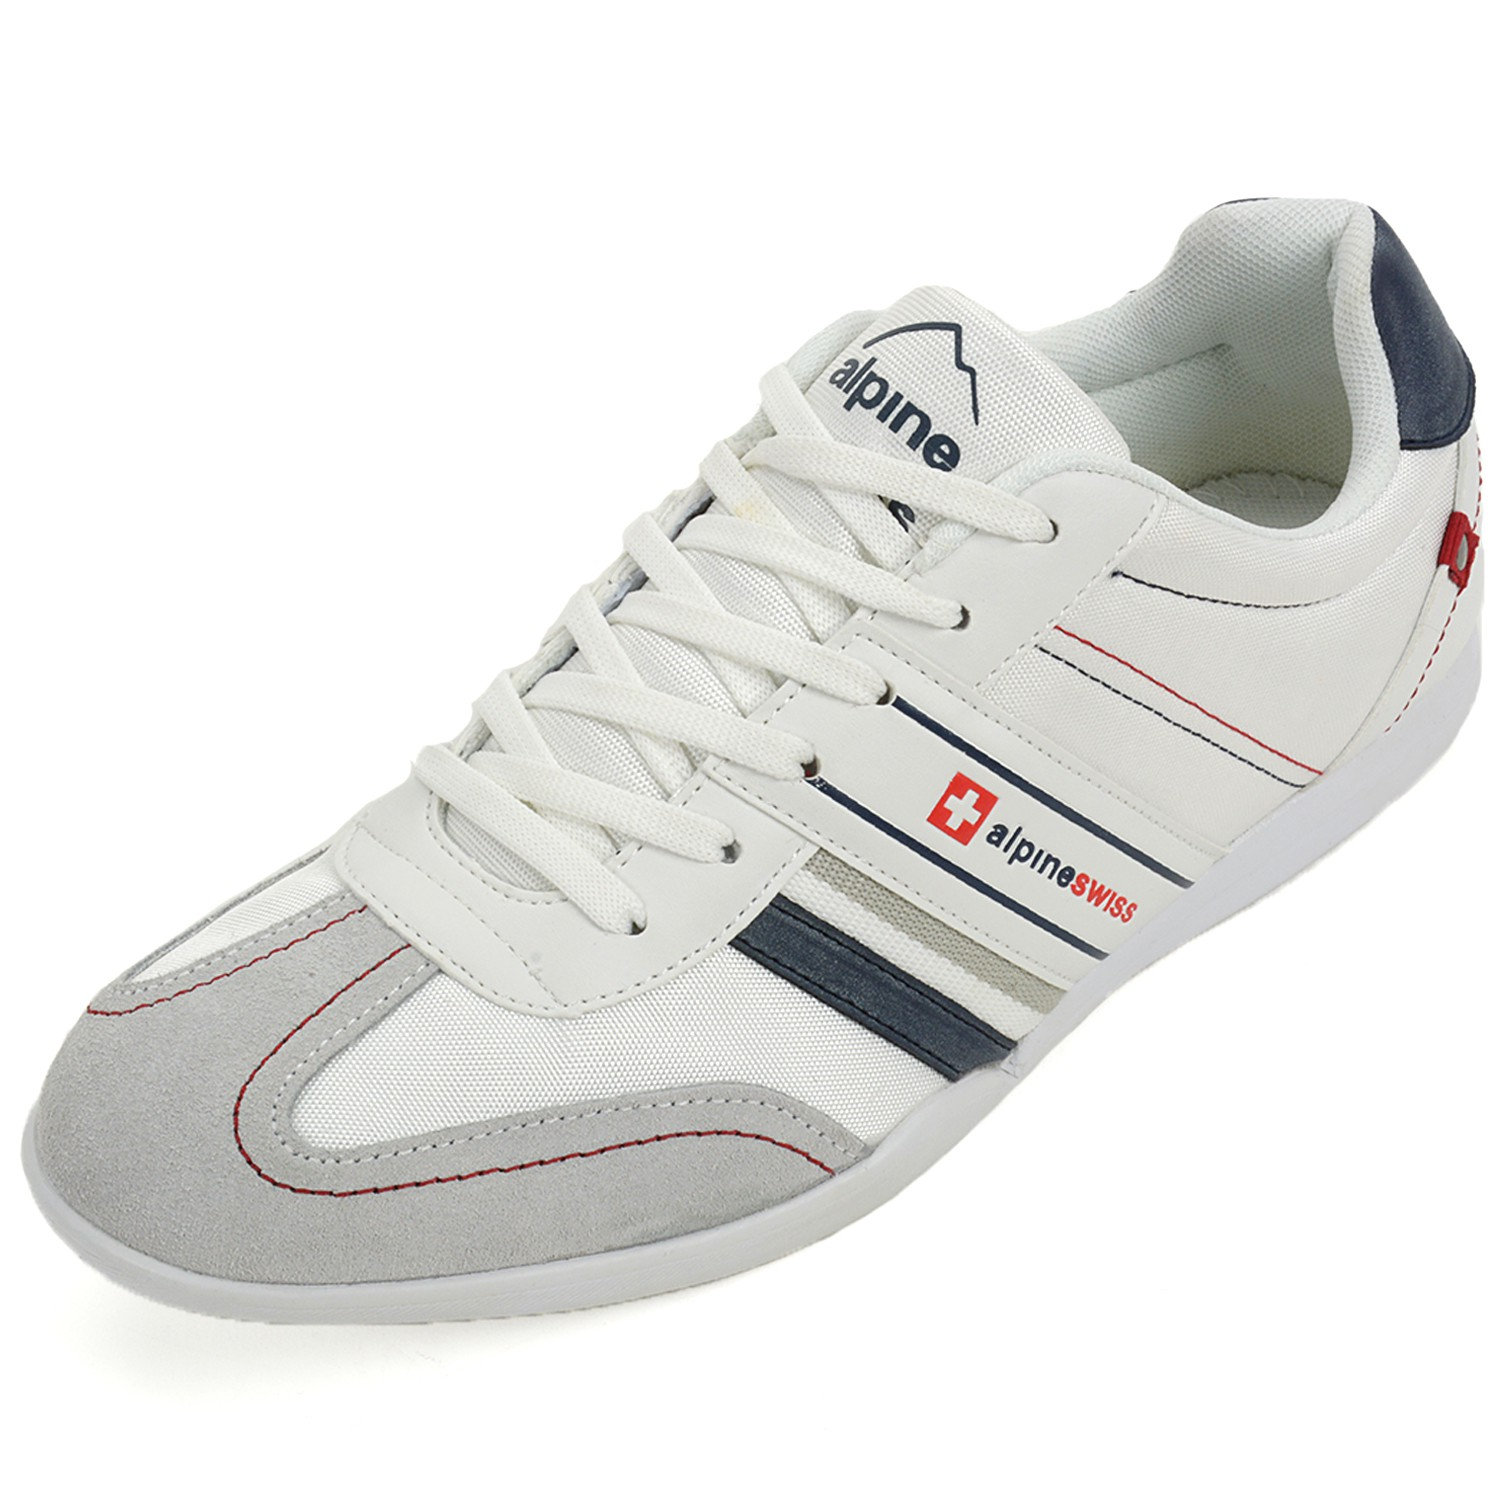 Alpine Swiss Men S Ivan Trim Retro Tennis Shoes